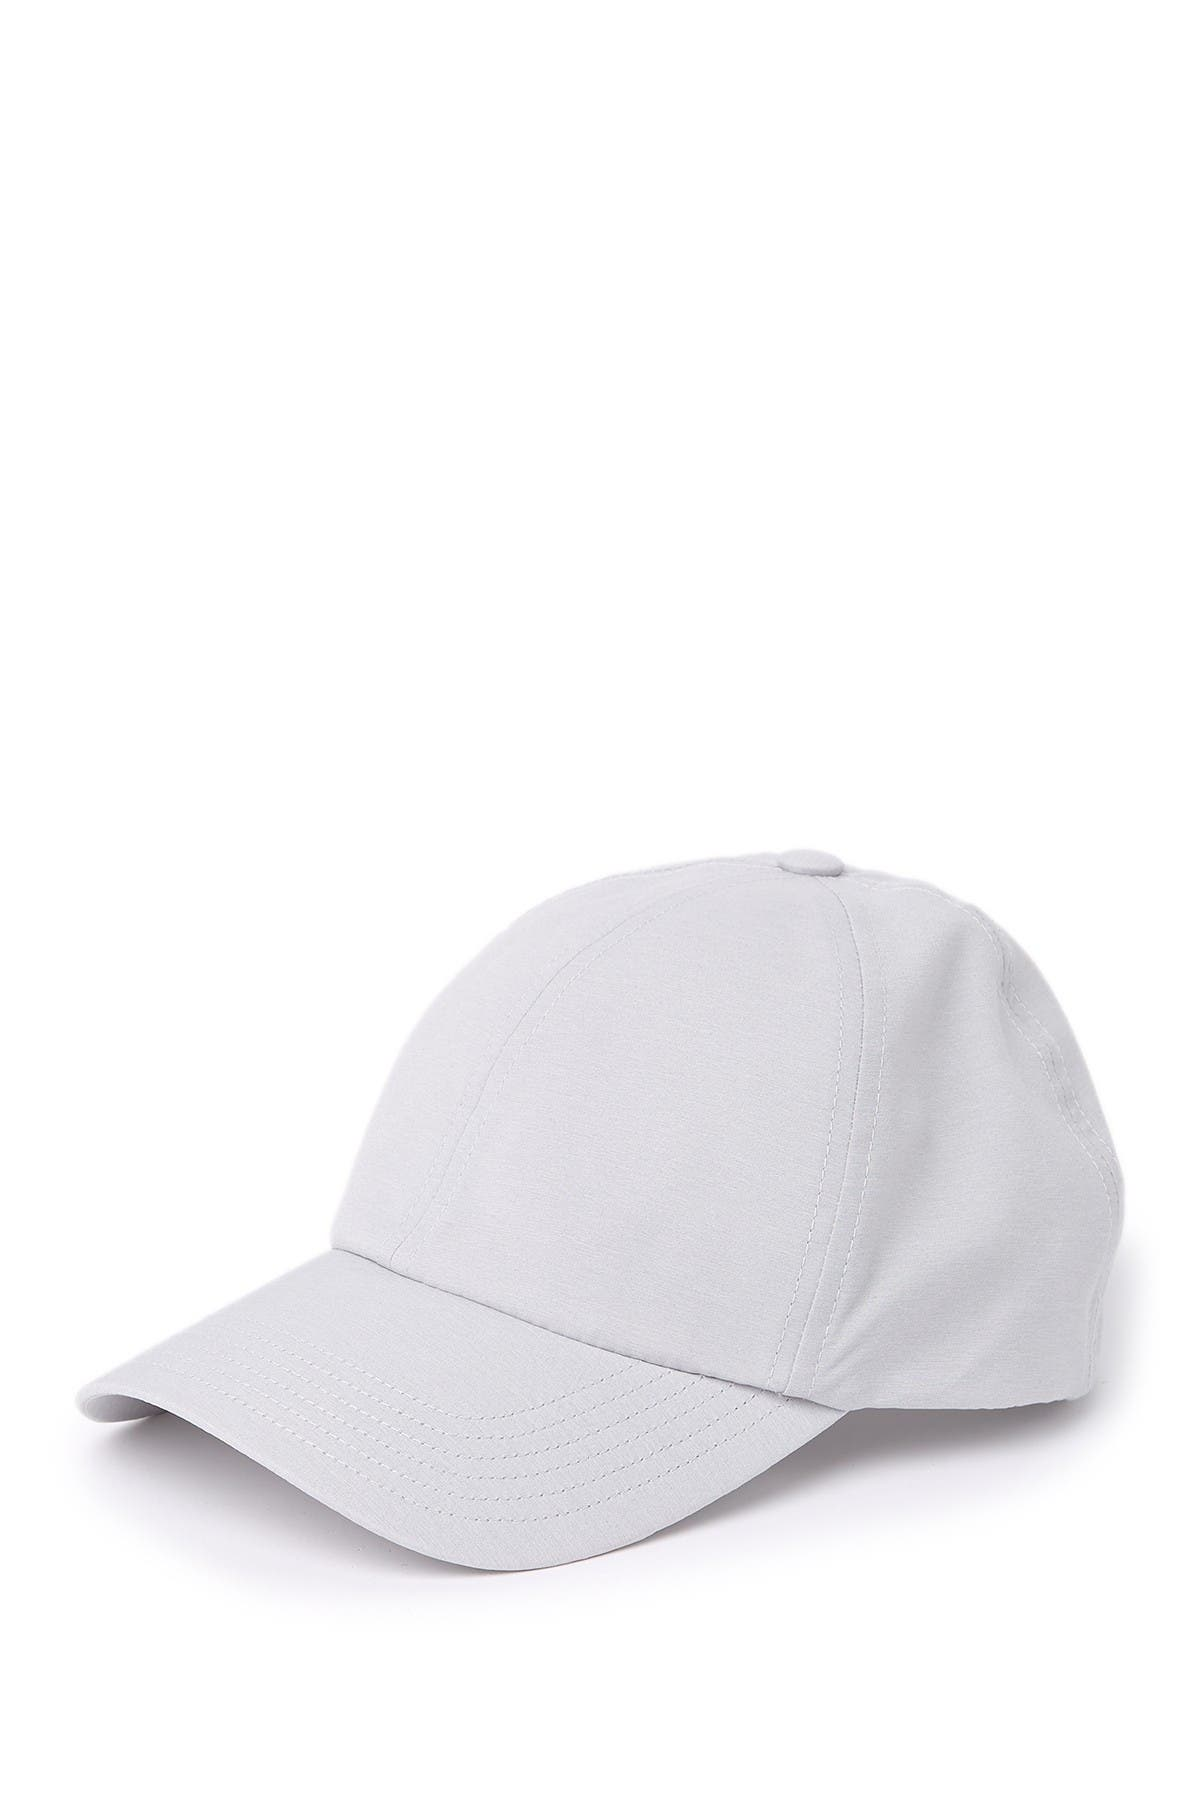 Image of Adidas Golf Crestable Heathered Cap